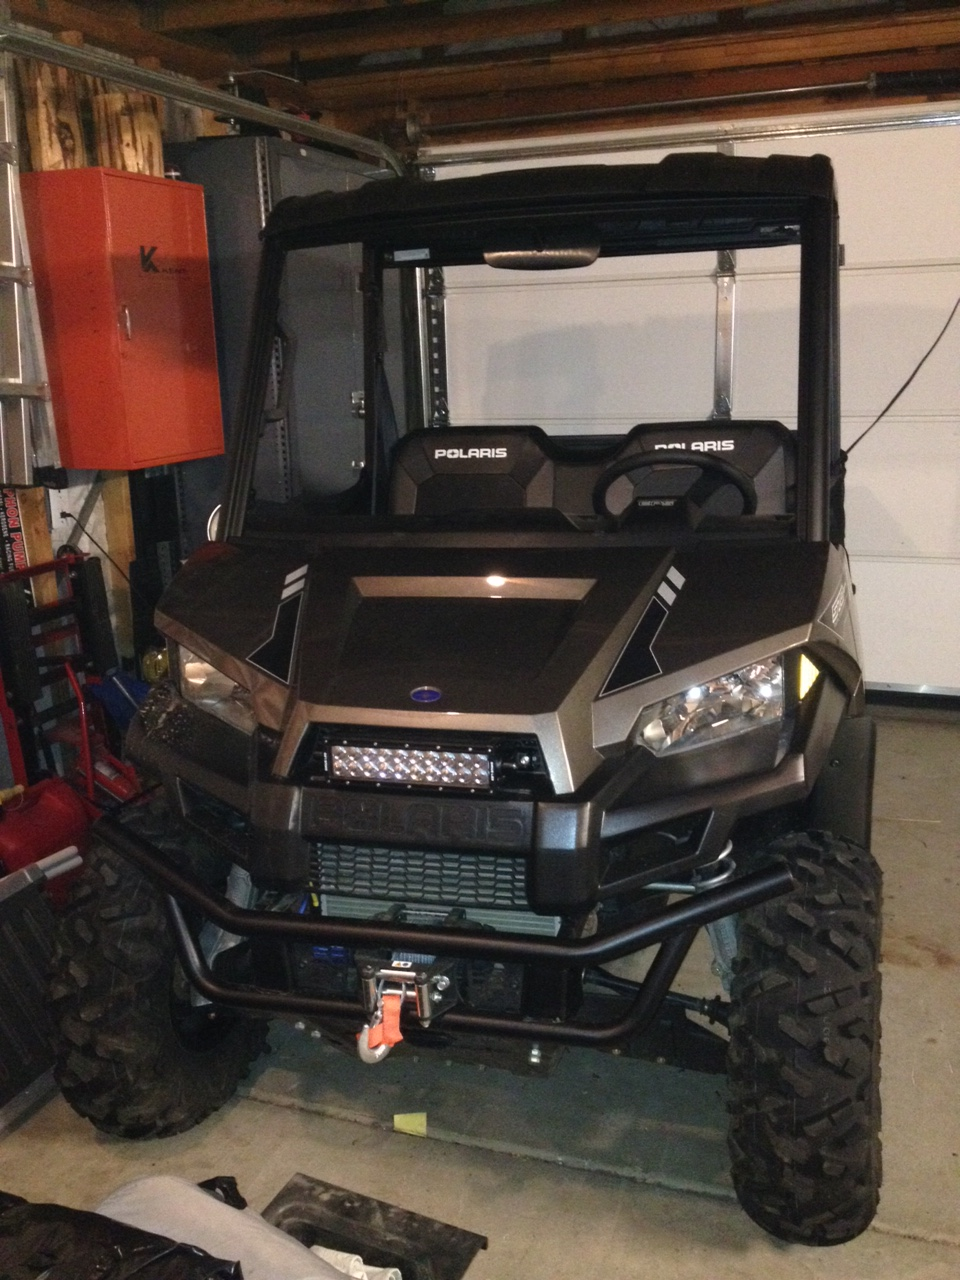 Maxresdefault as well D Winch Install Sportsman W Pics P also D Sportsman Touring Sp A A A Bfa F E as well D Snow Plow Install Help Img additionally Hqdefault. on polaris sportsman winch install